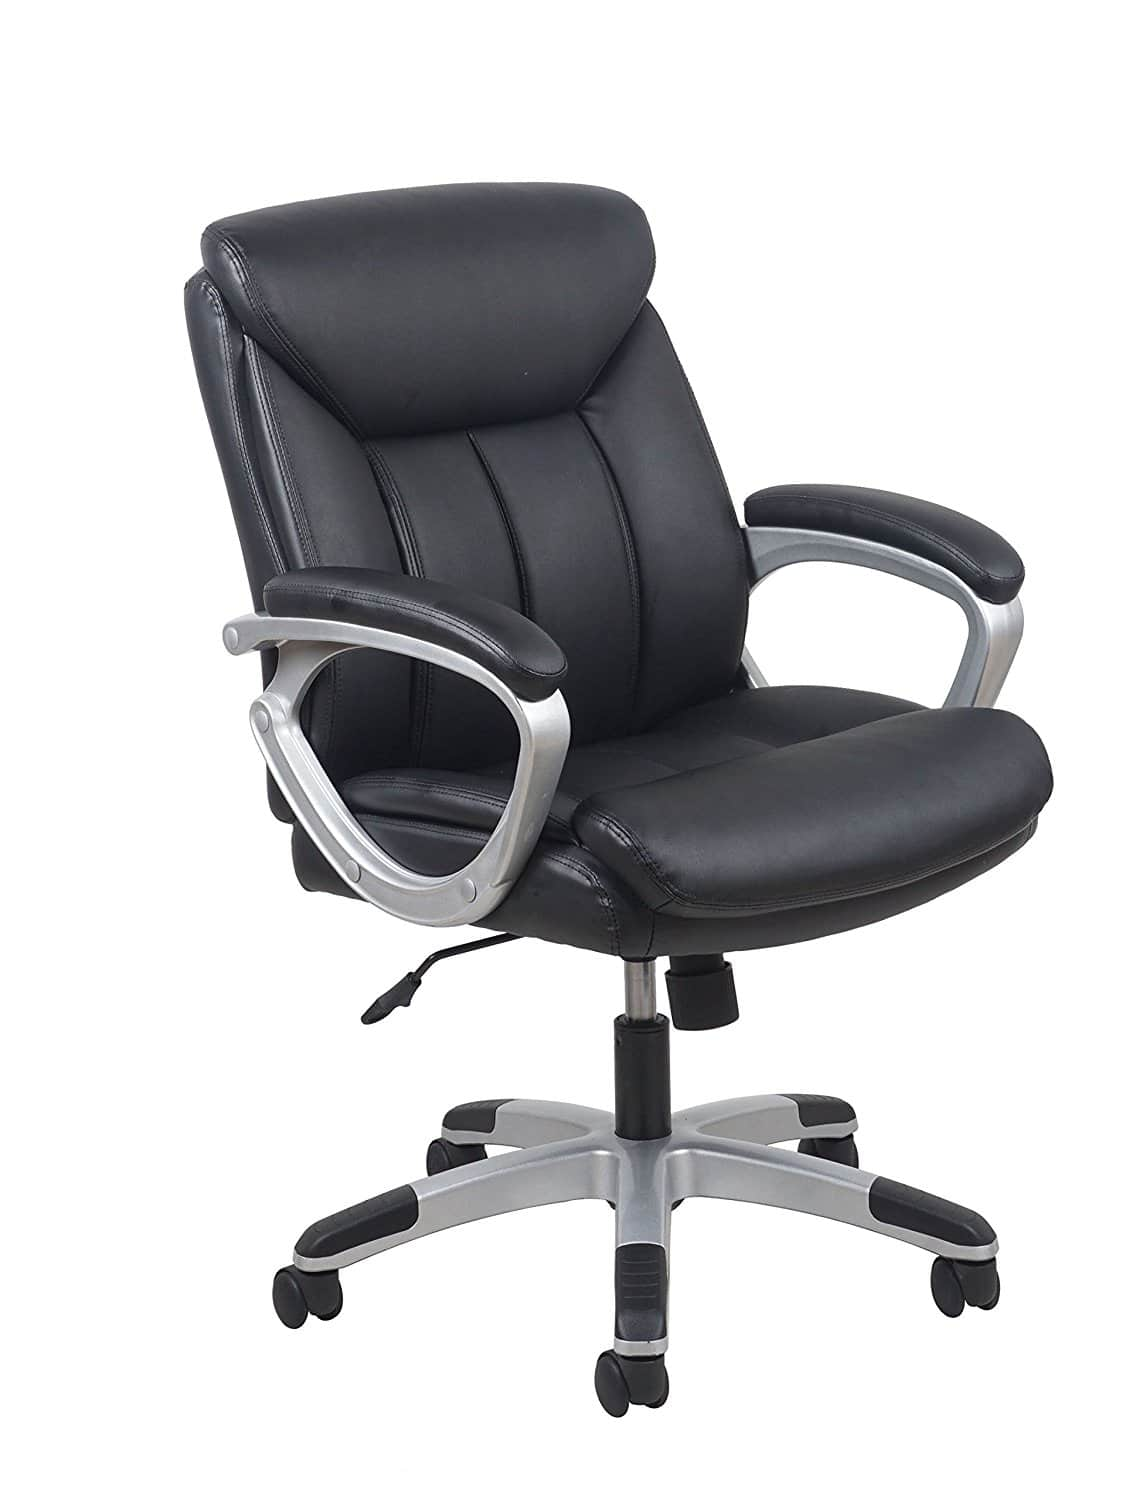 top 10 best ergonomic office chairs in 2018 may 2018. Black Bedroom Furniture Sets. Home Design Ideas